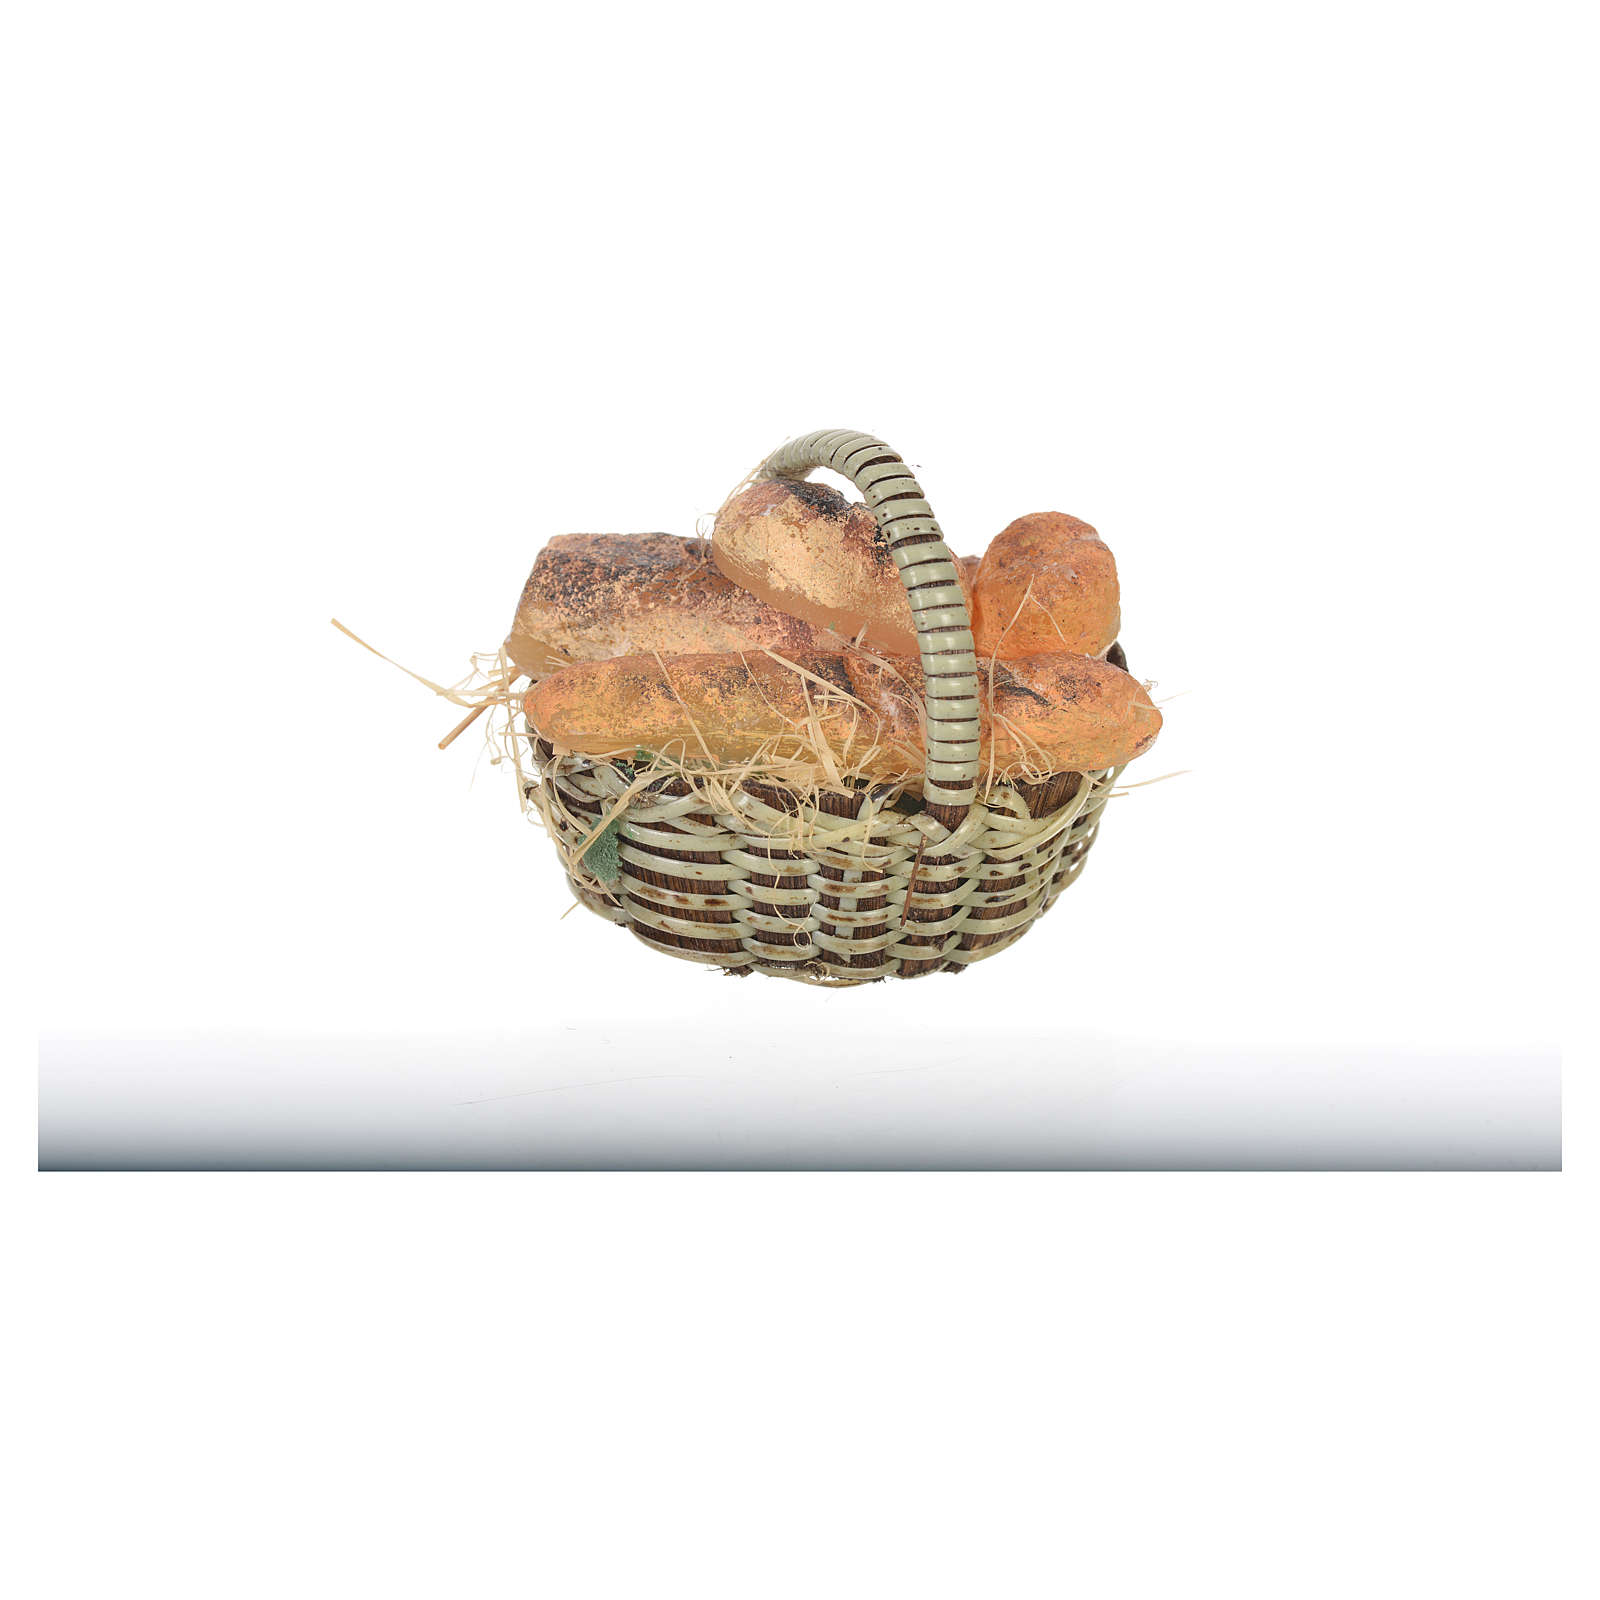 Accessory for nativities of 20-24cm, basket with bread in wax 4